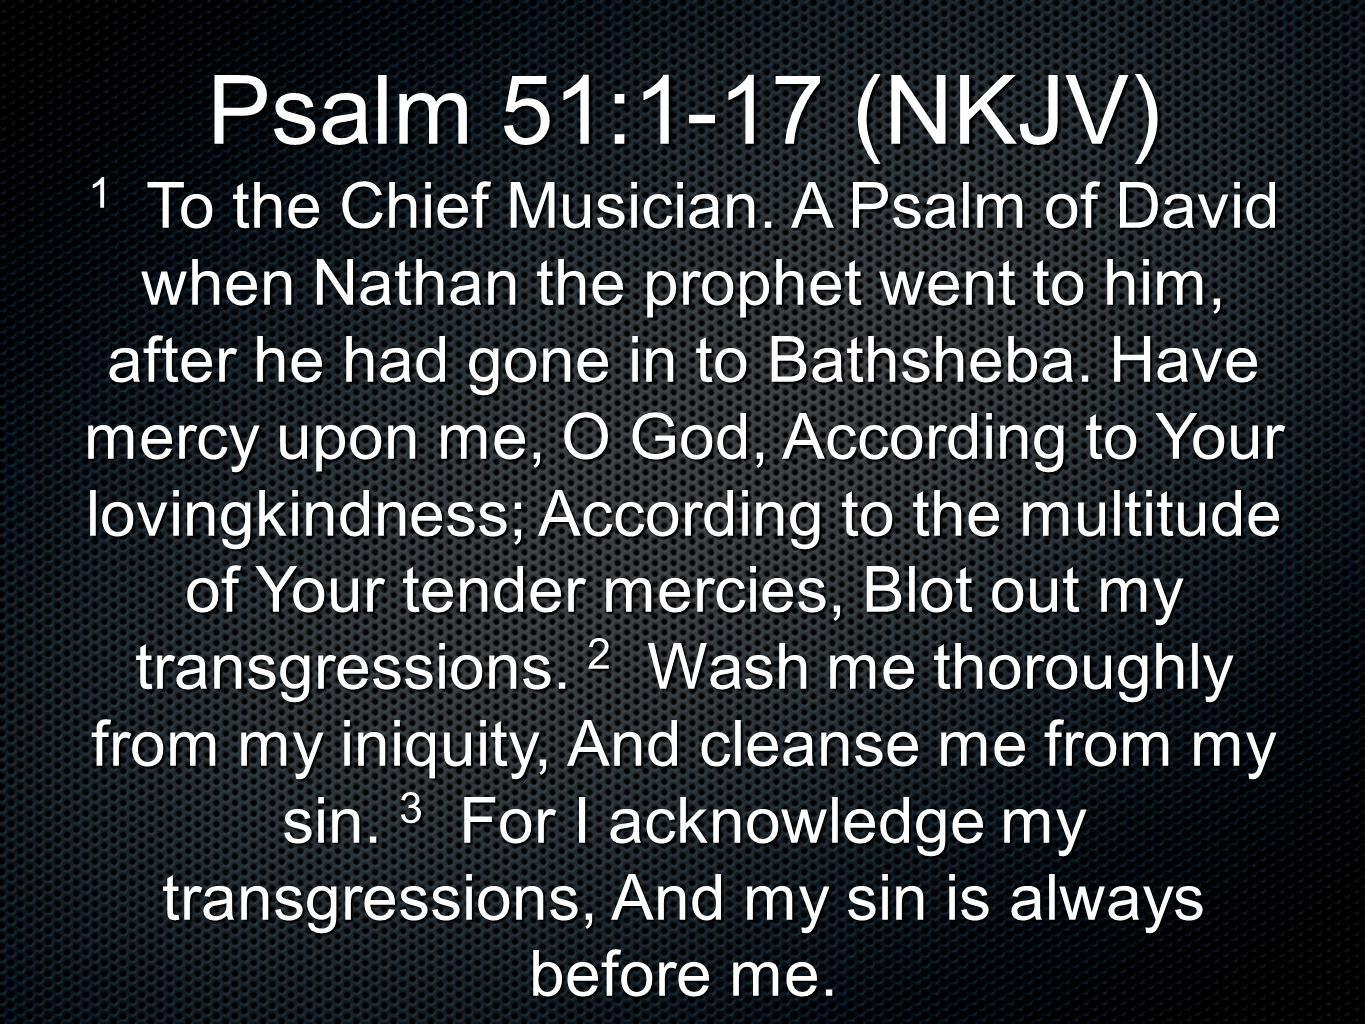 Psalm 51:1-17 (NKJV) 1 To the Chief Musician.